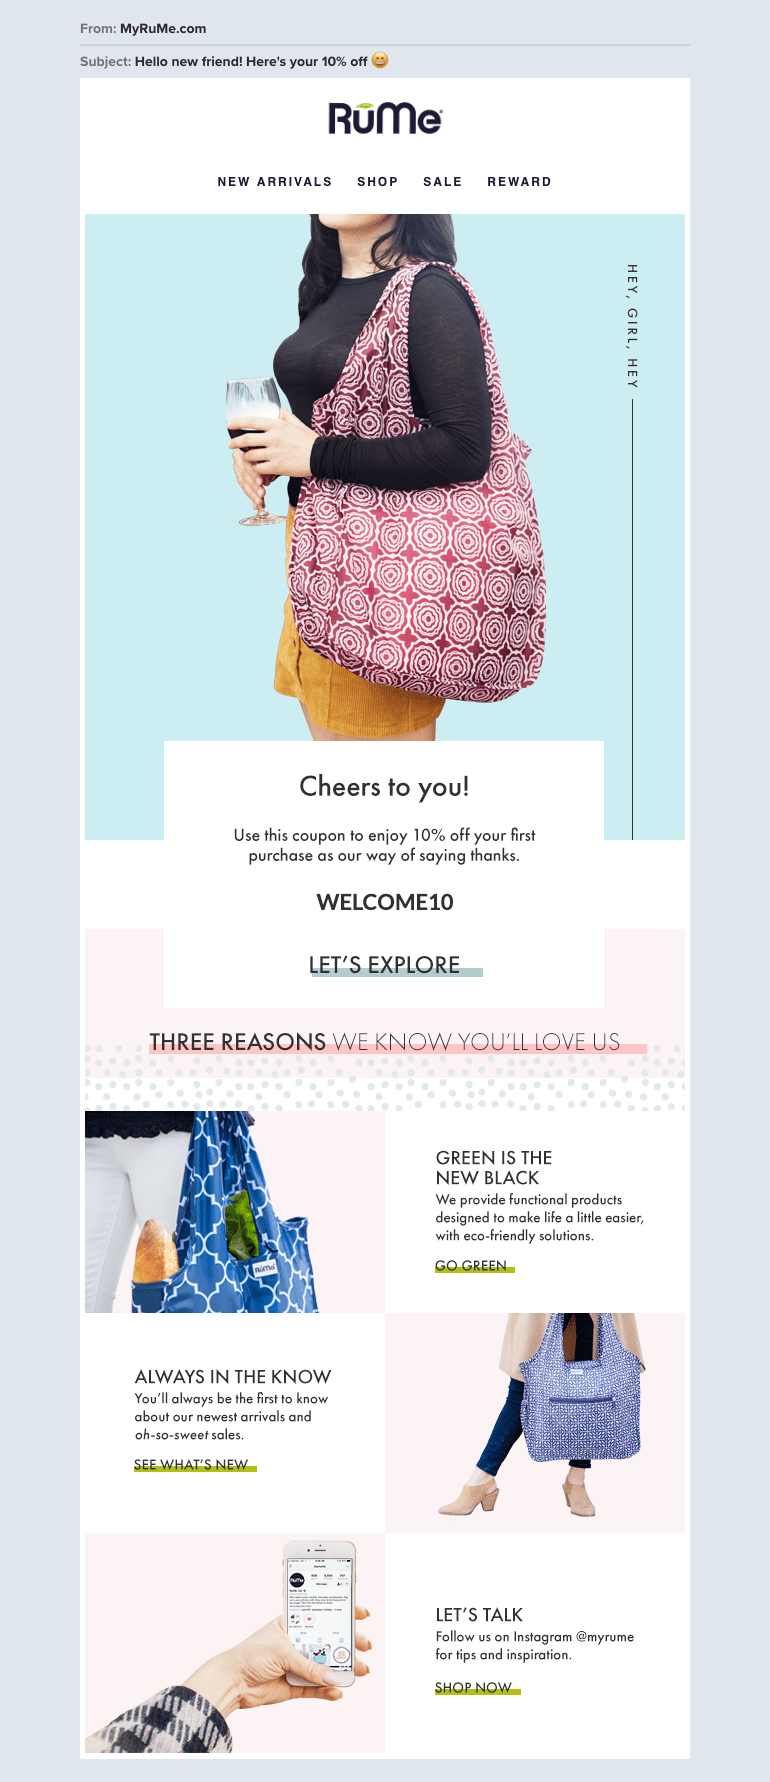 RuMe ecommerce welcome email example